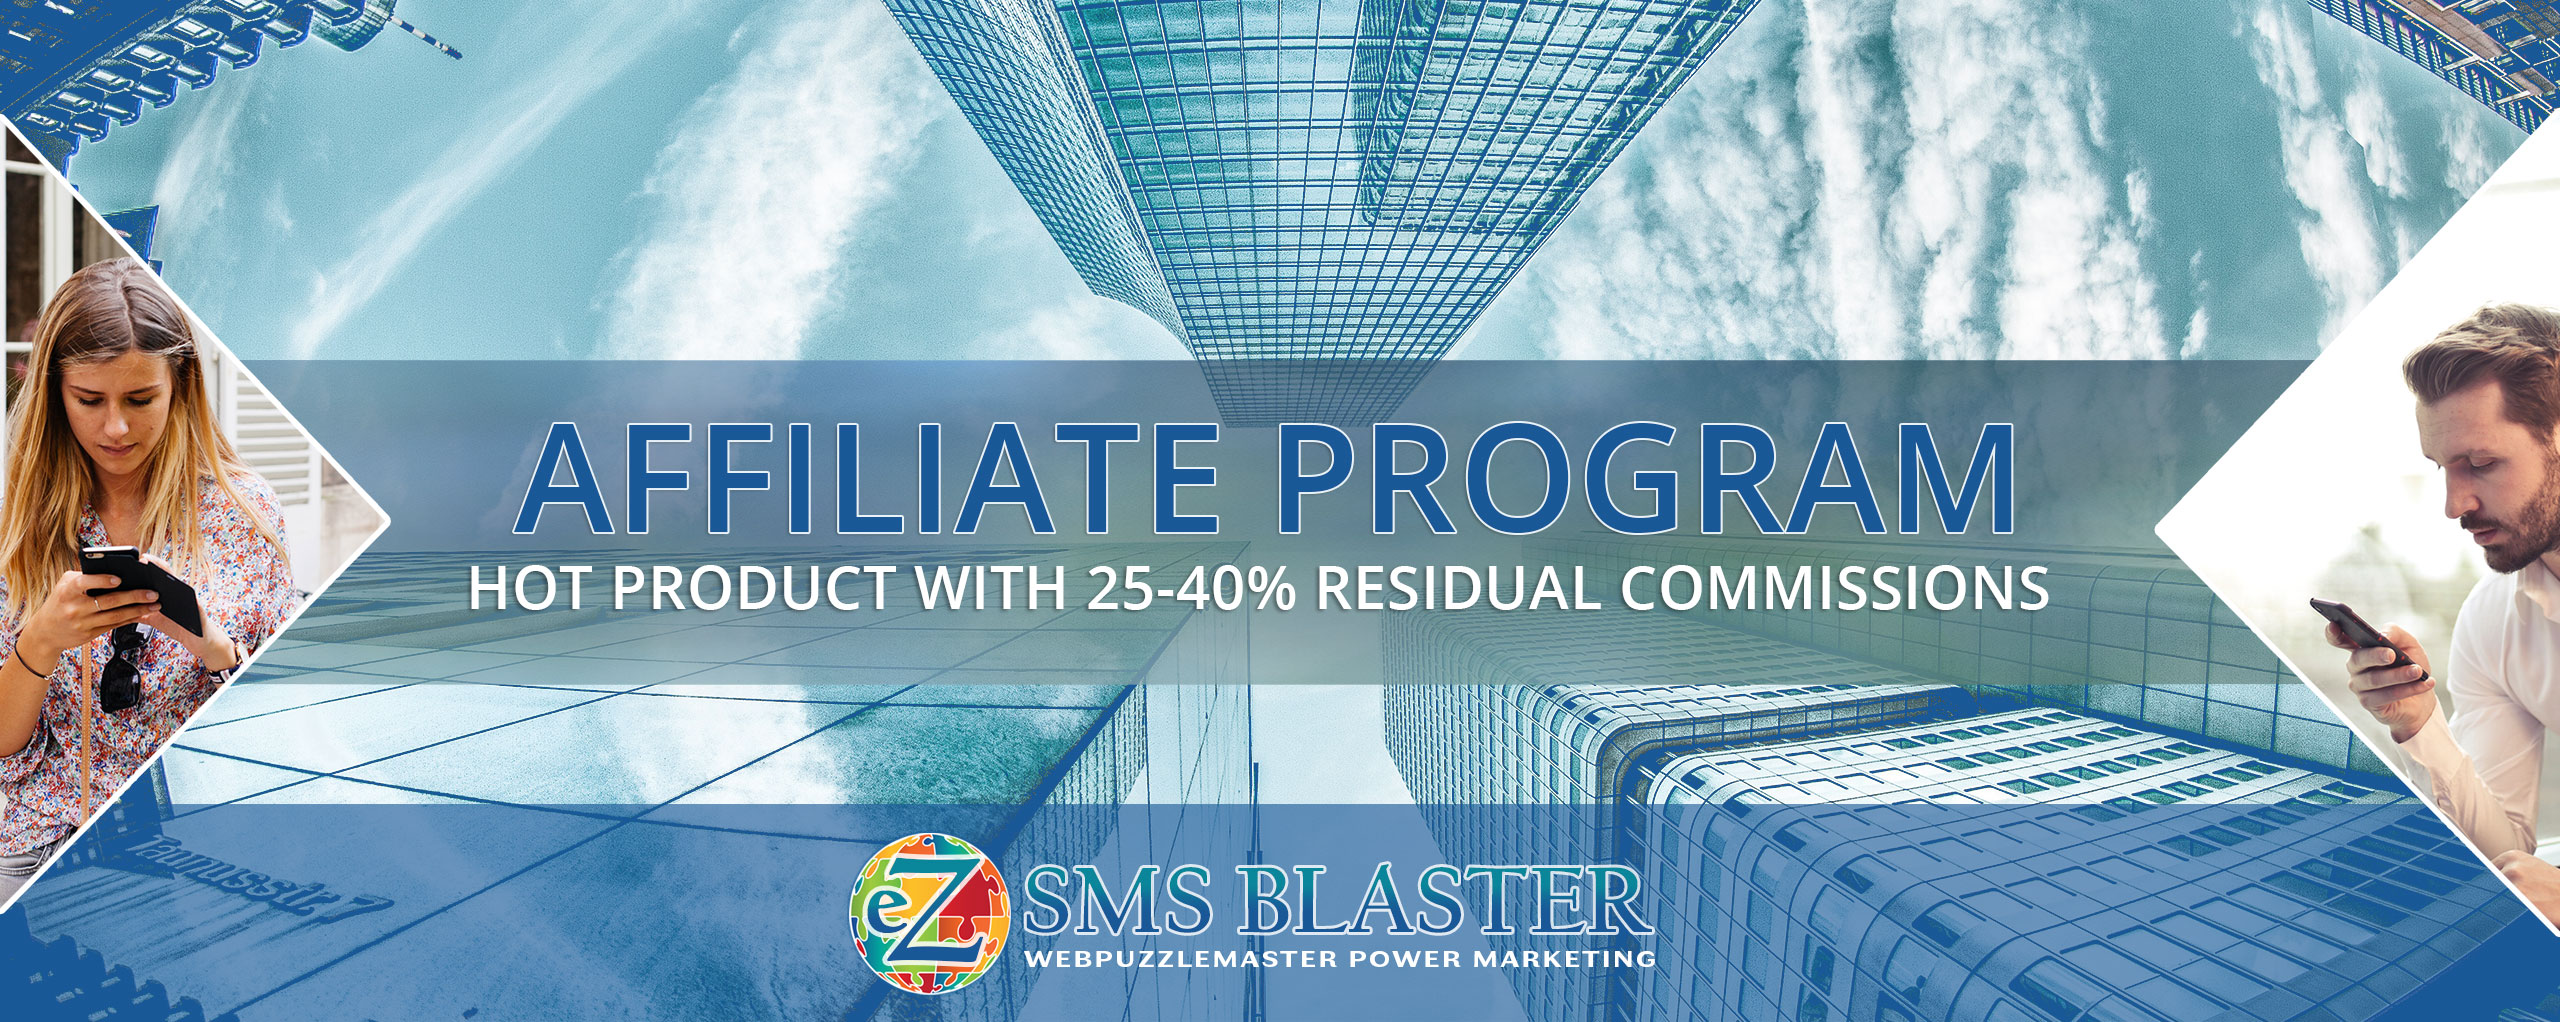 Introducing eZ SMS Blaster Affiliate Program